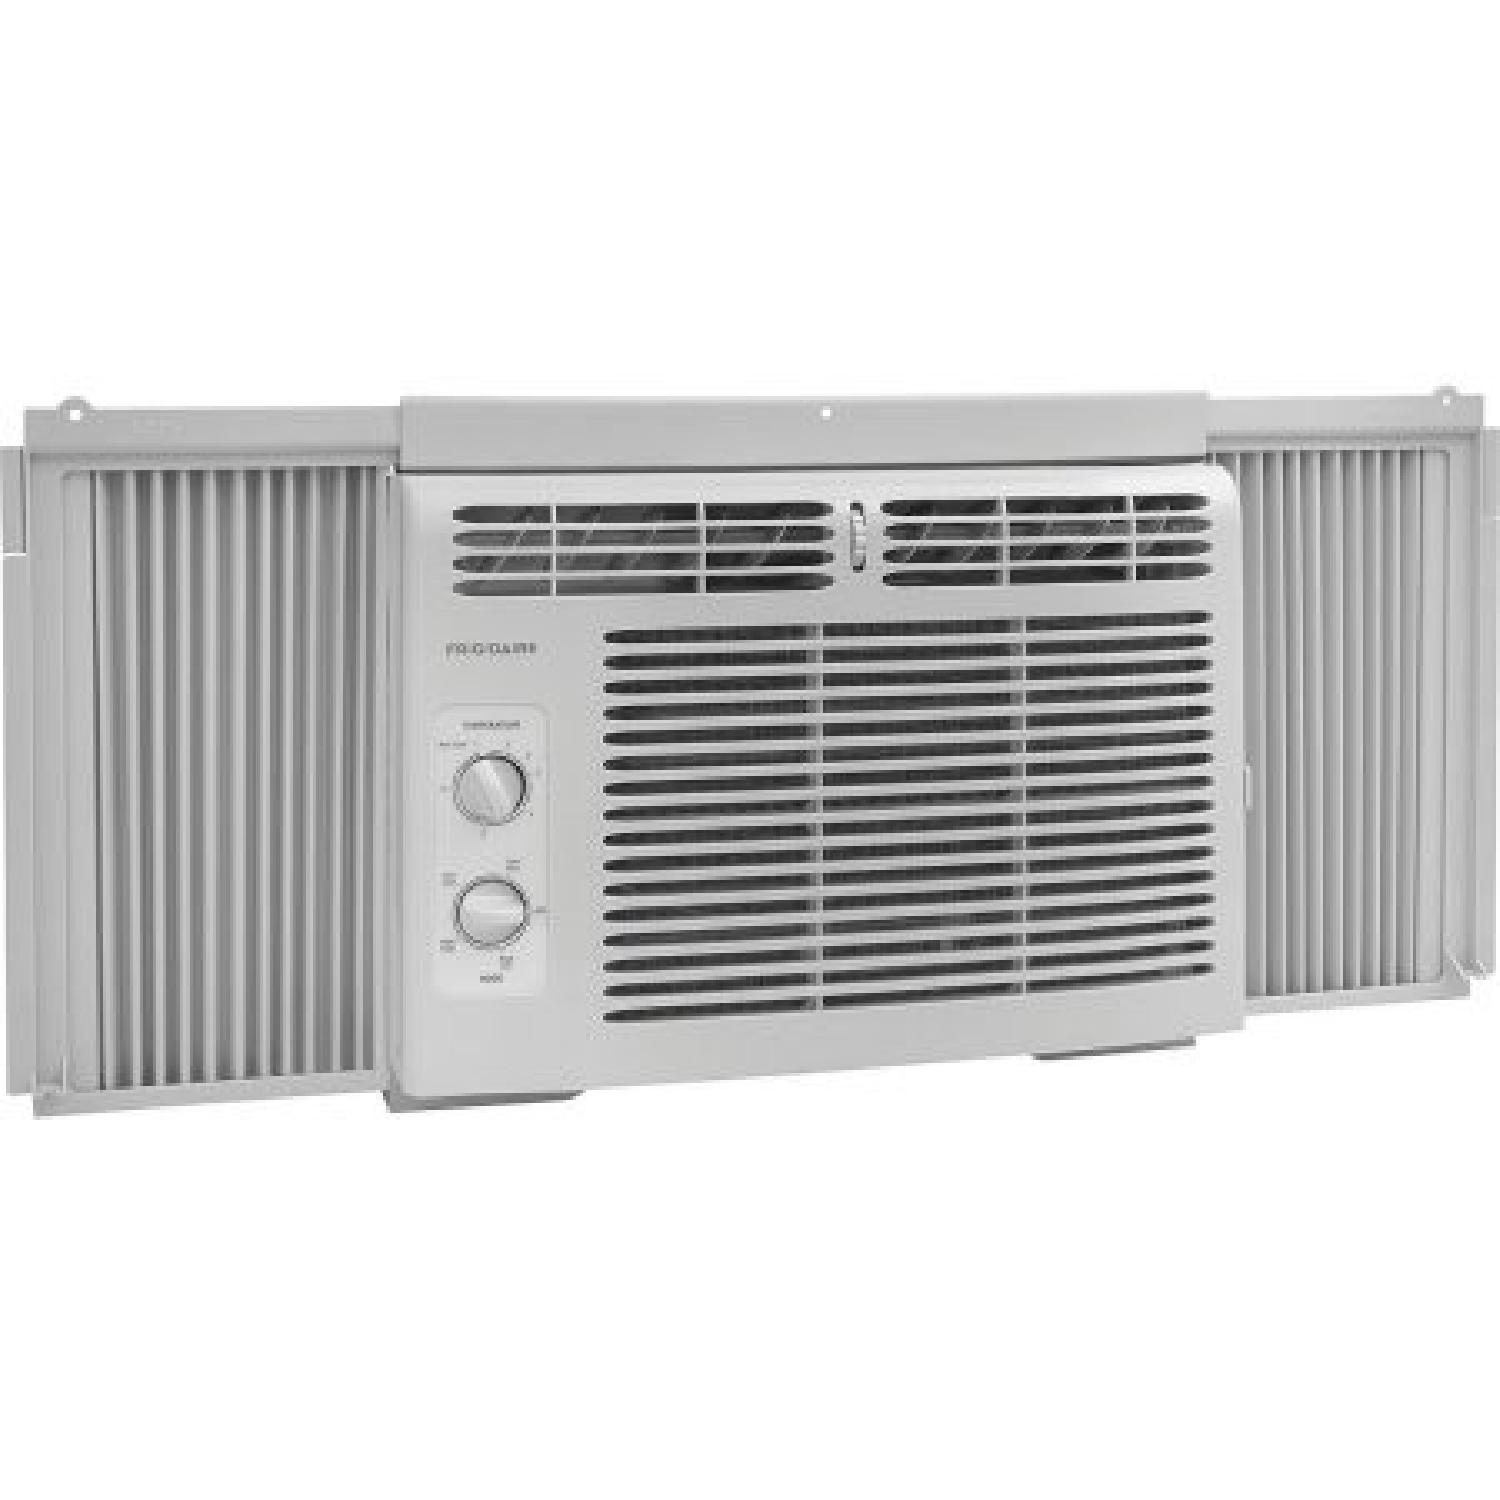 Frigidaire Ffra0511r1 5 000 Btu 115v Window Mounted Mini Compact Air Conditioner With Mechanical Controls Aptdeco